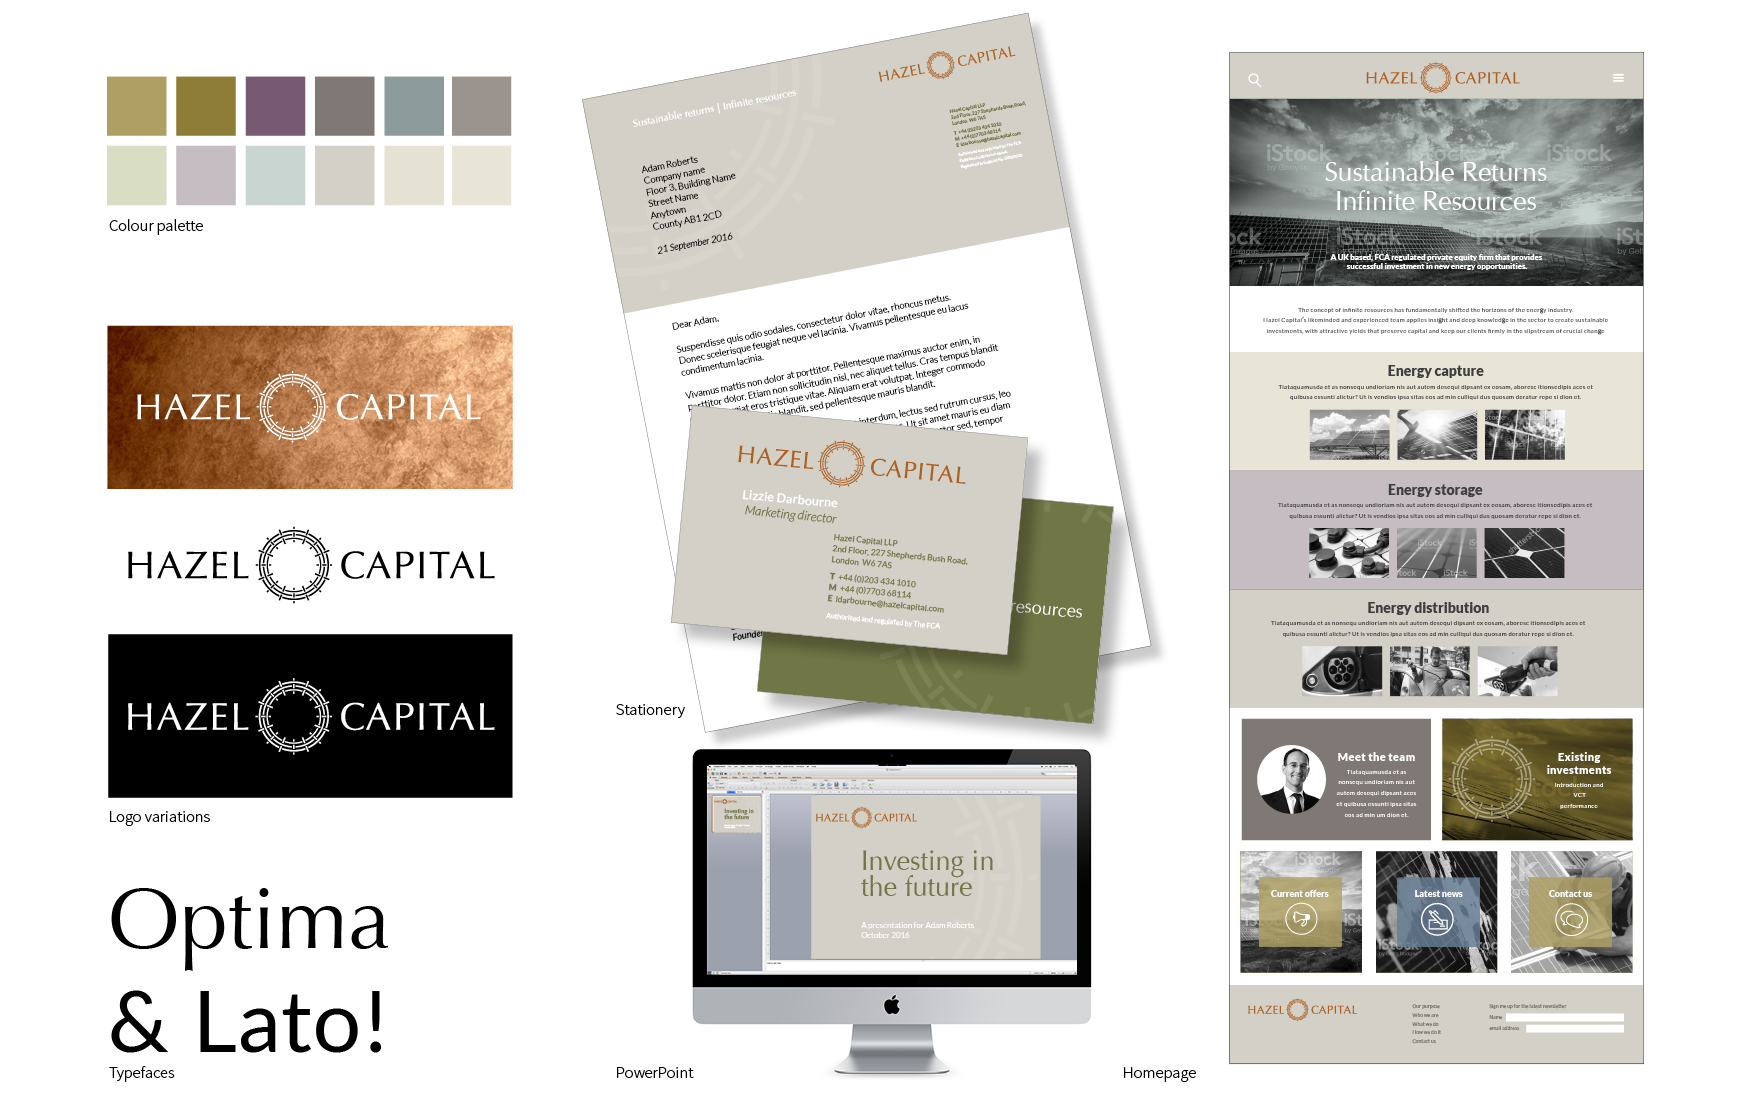 Hazel Capital visual identity exploration 3